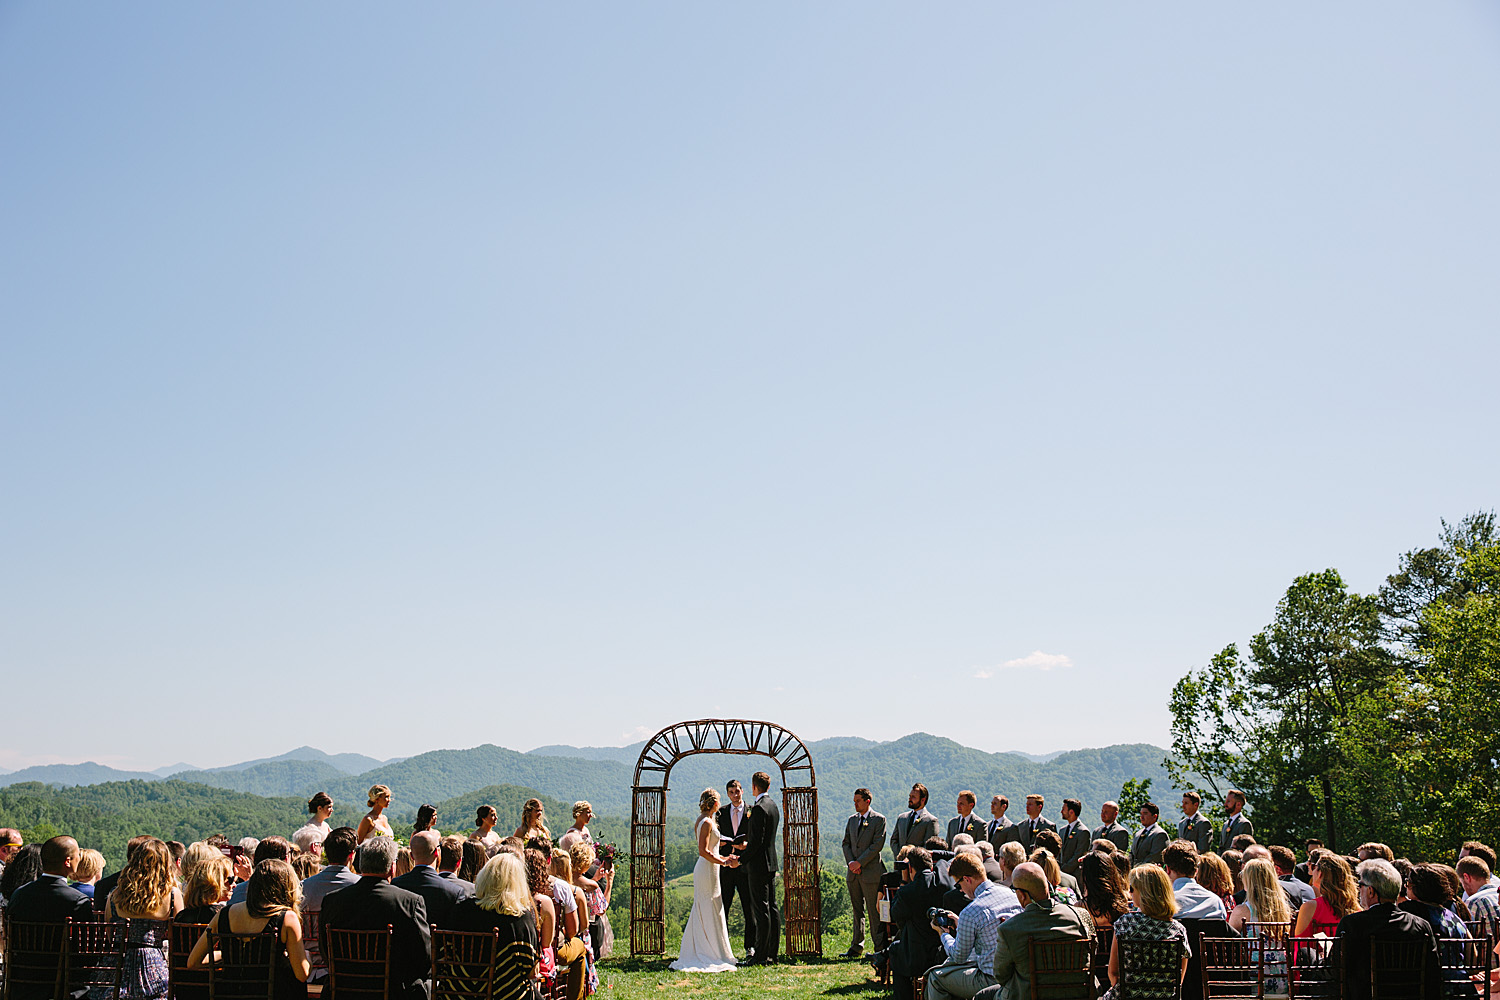 Jeremy-Russell-Asheville-The-Ridge-Wedding-1705-54.jpg